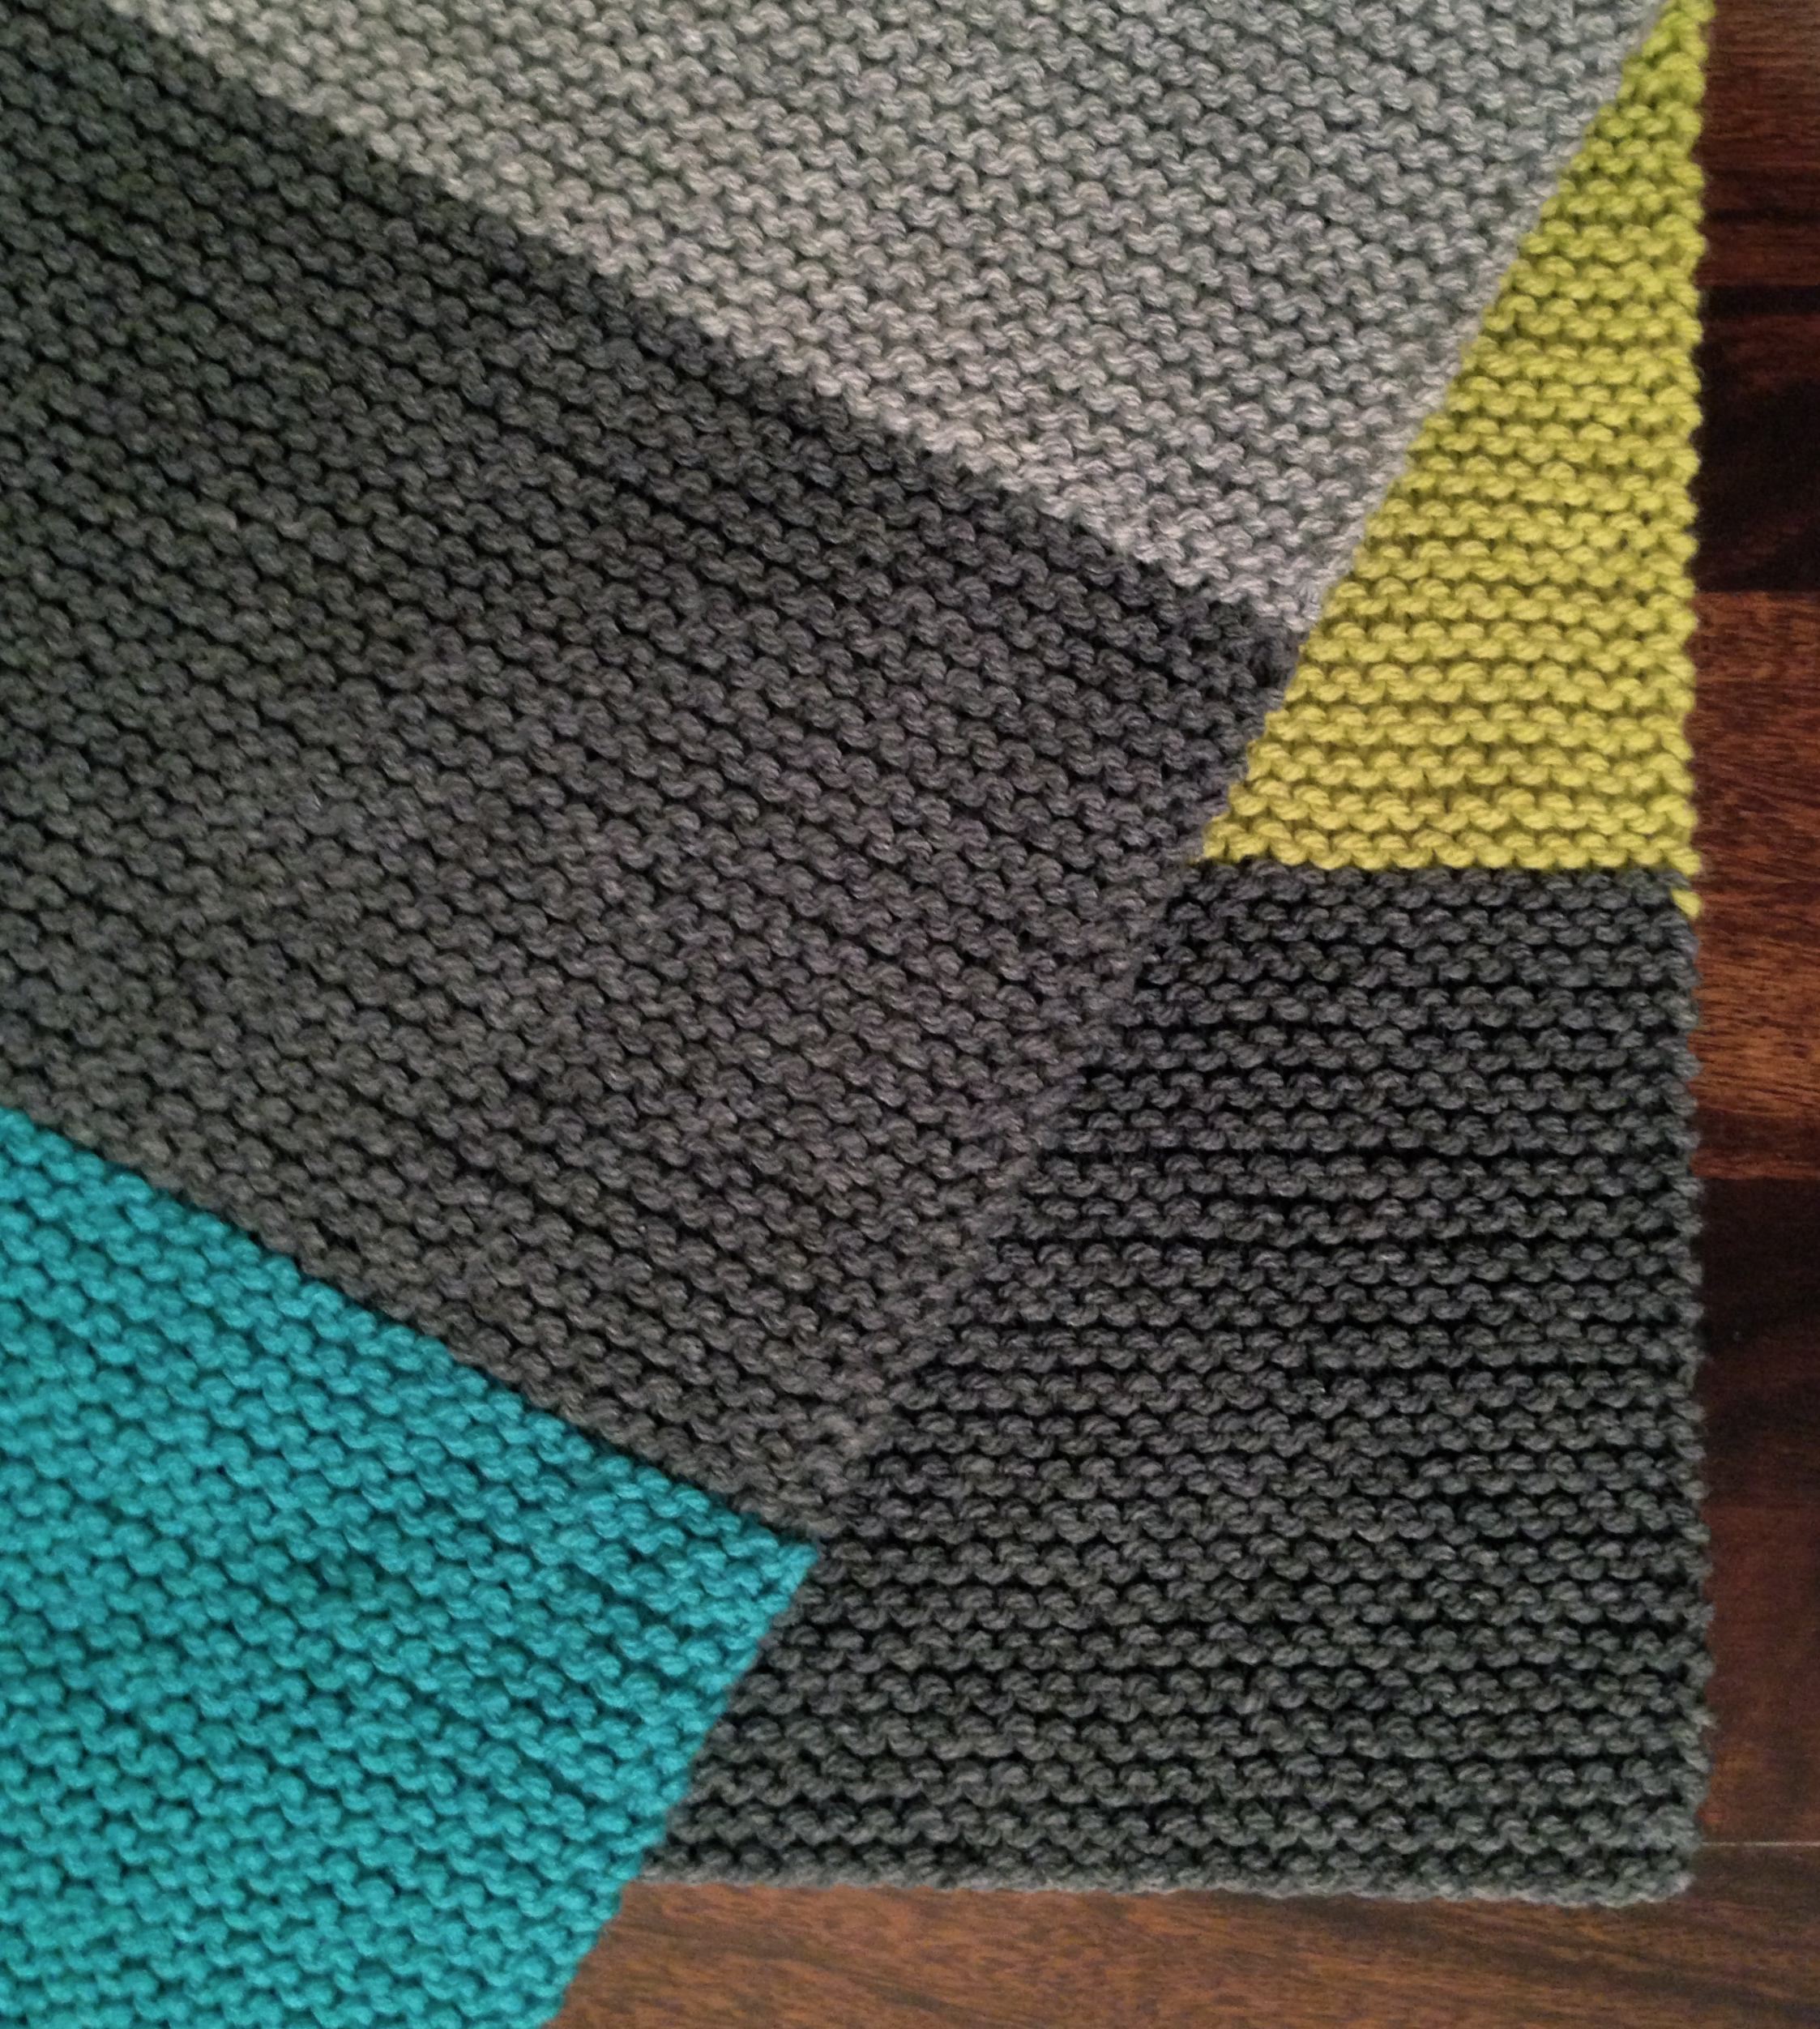 Knitting Pattern For Garter Stitch Baby Blanket : CLASSES/PROJECTS HANDMADE